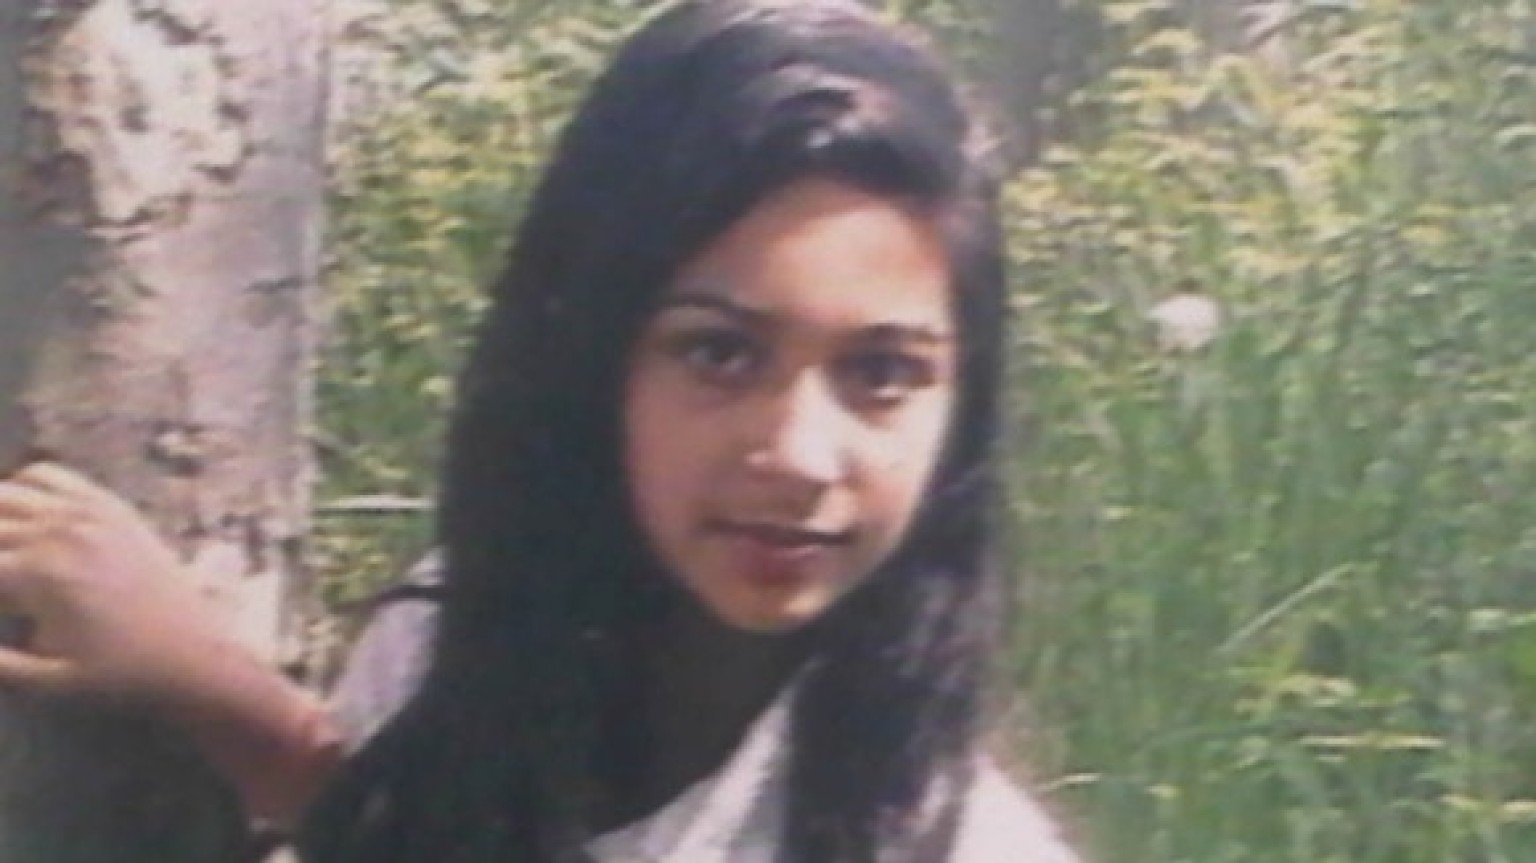 Missing Erika Kacicova Sought By Police As Man Questioned